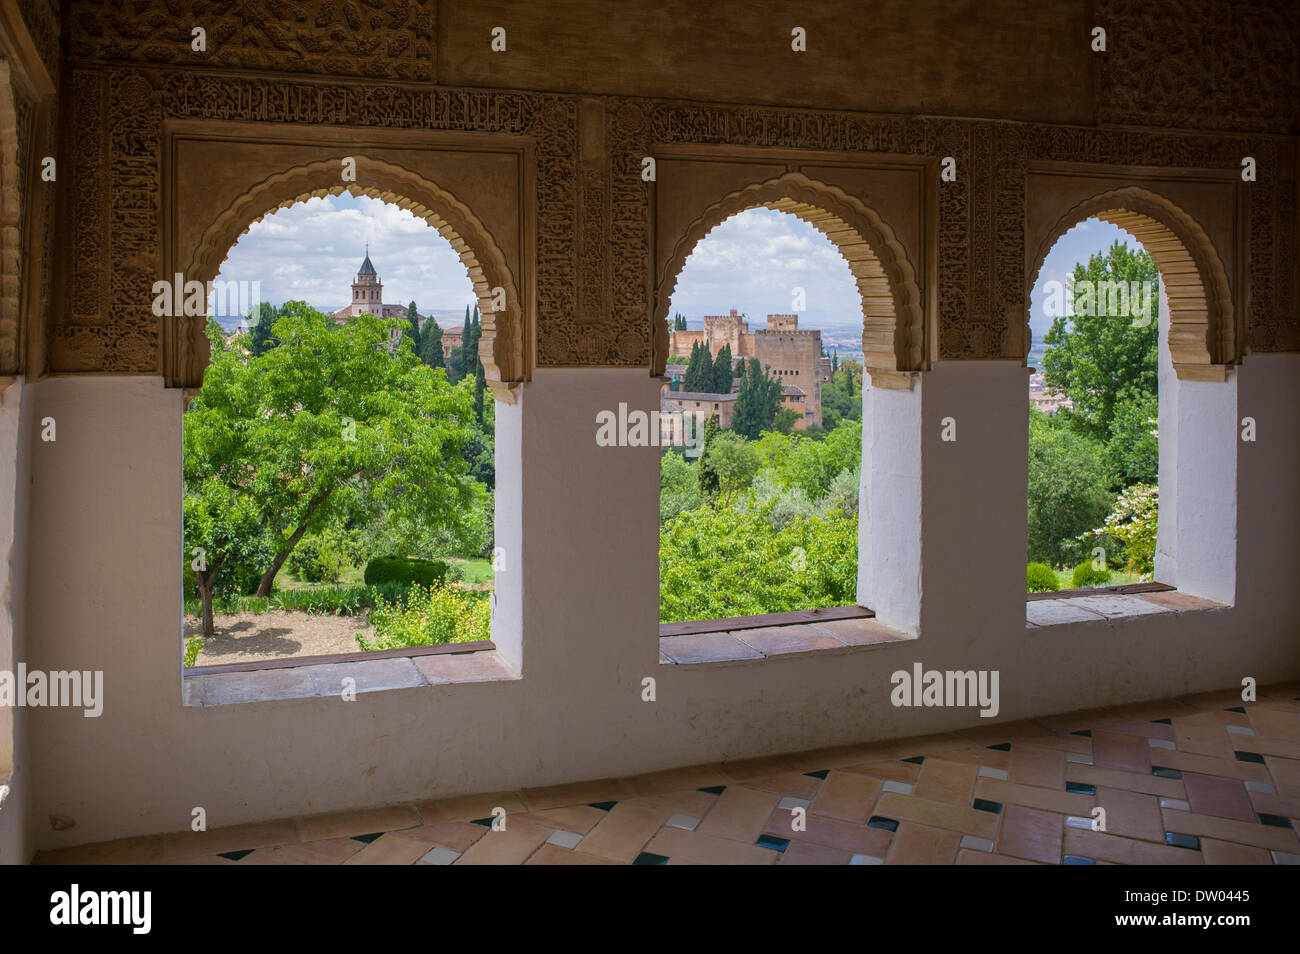 View of the Alhambra with palaces and gardens, UNESCO World Heritage Site, Granada, Andalusia, Spain - Stock Image